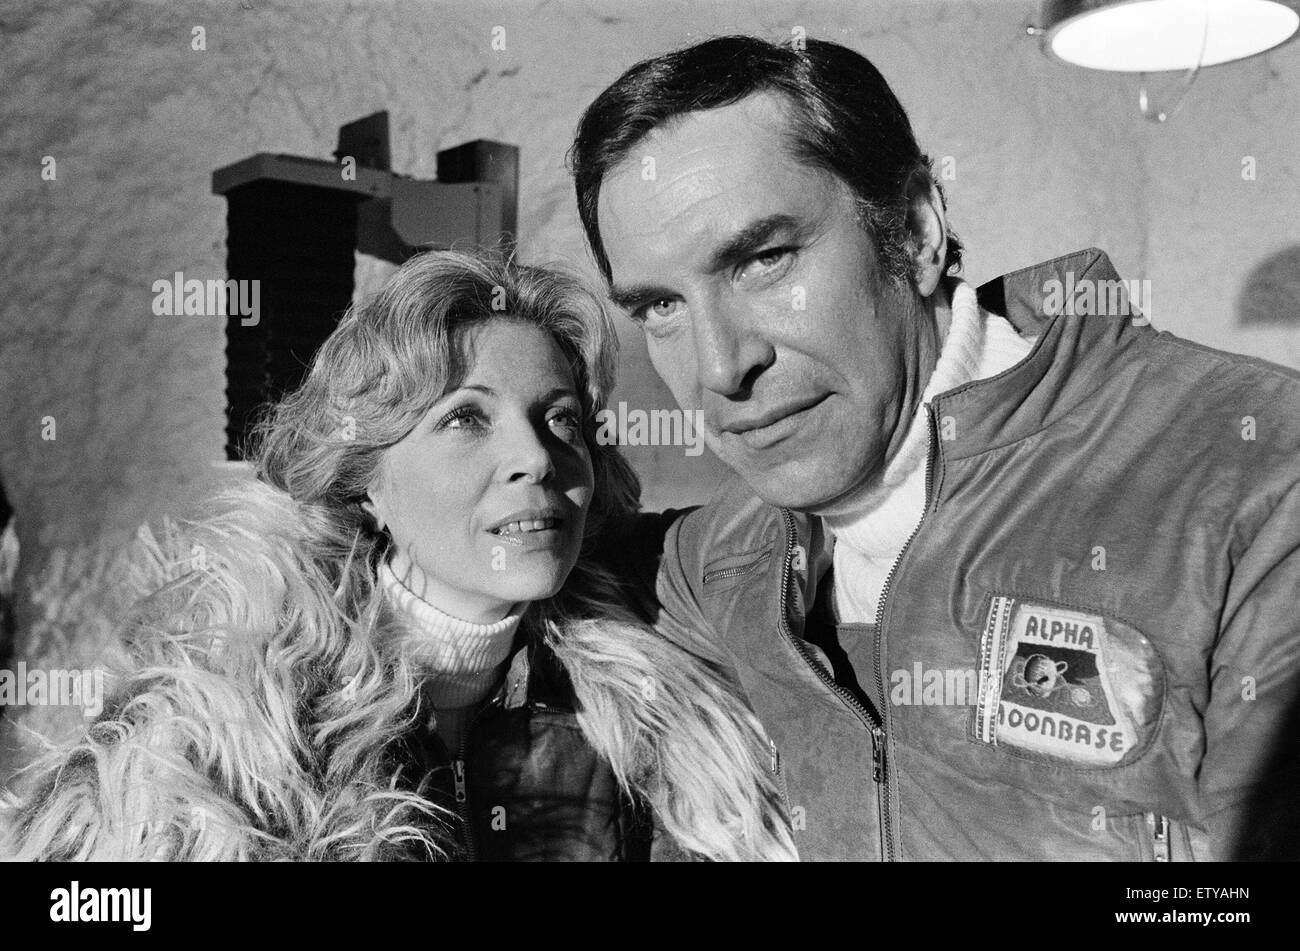 Space 1999, Science Fiction TV Series, filmed at Pinewood Studios, Iver Heath, Buckinghamshire, 25th September 1999. - Stock Image